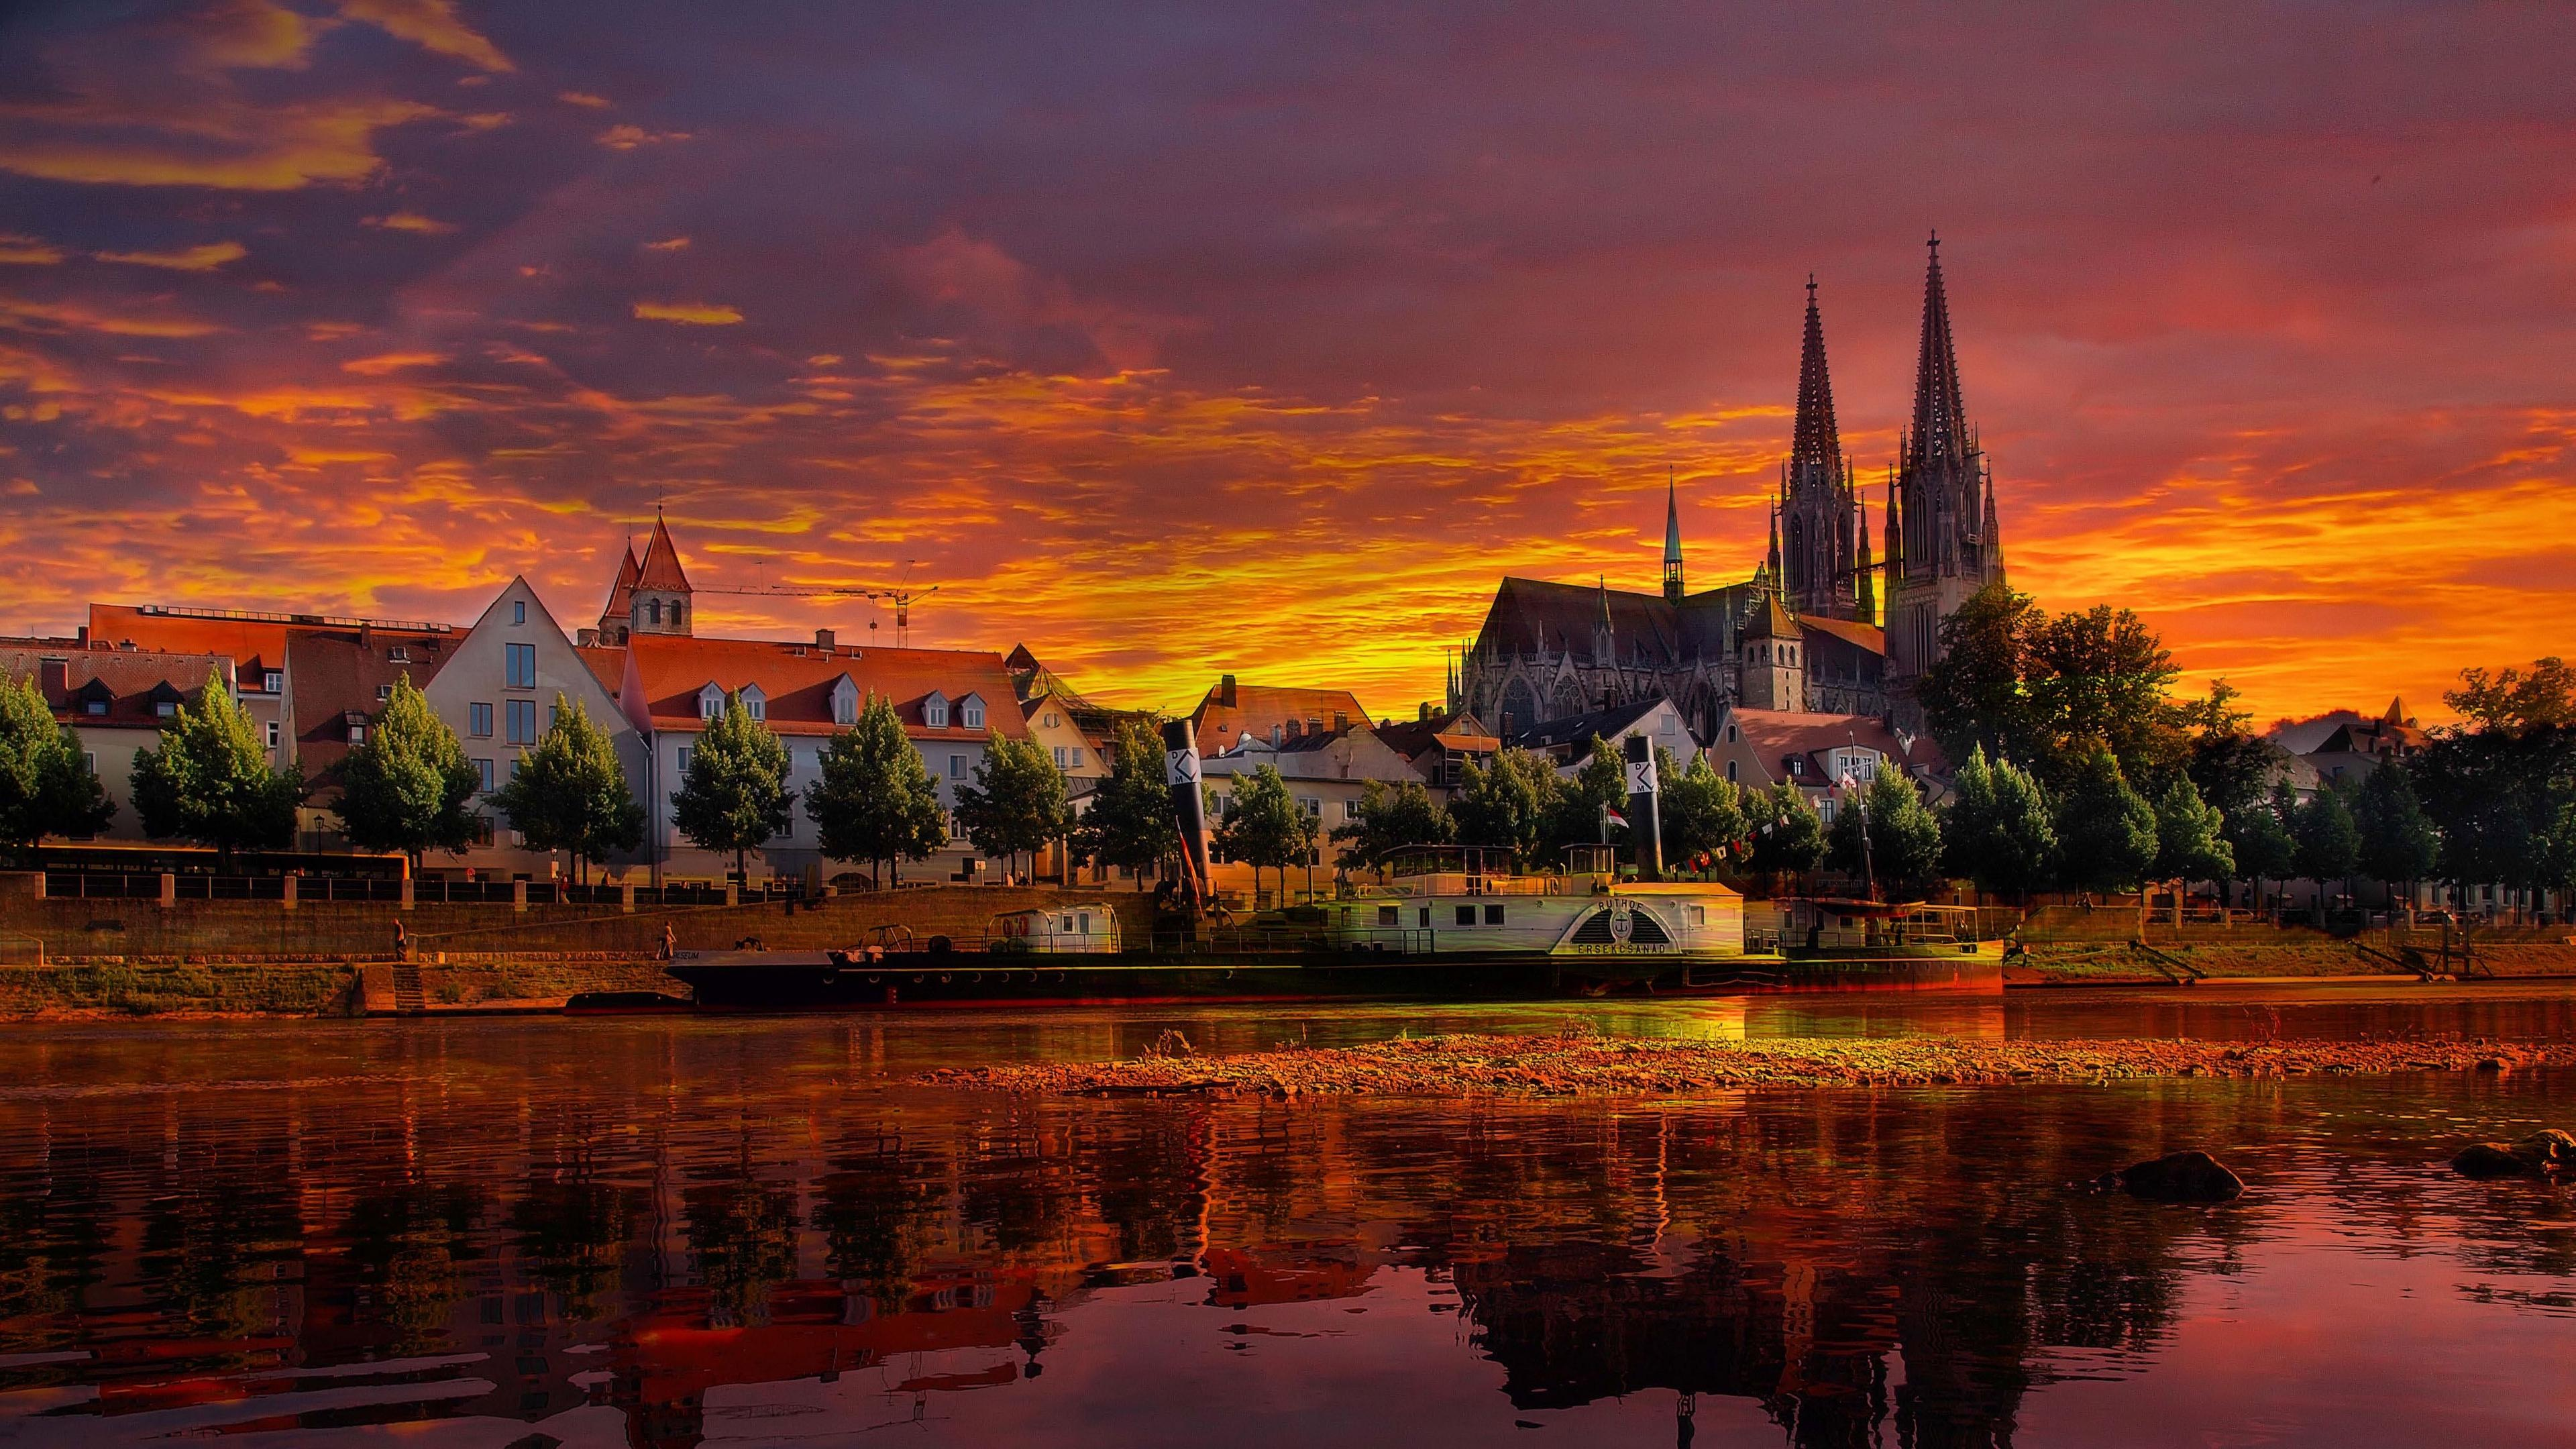 Download wallpaper 3840x2160 regensburg, germany, sunset, cityscape ...